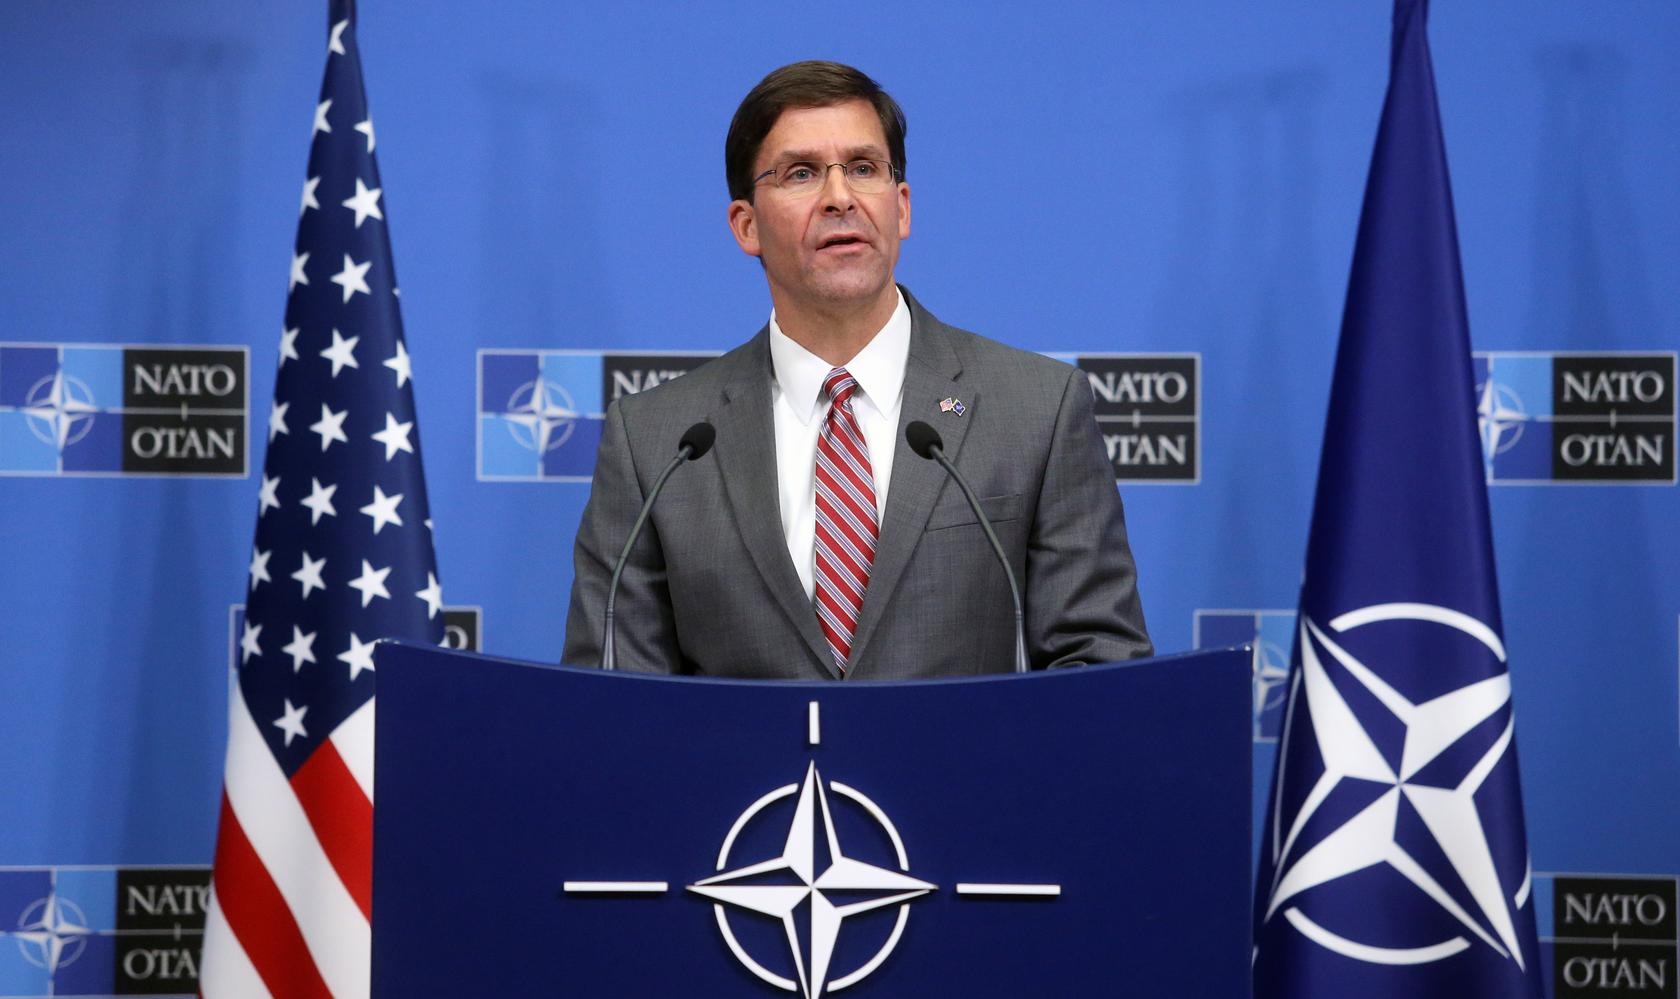 U S  defense chief tries to rally NATO allies on Iran as